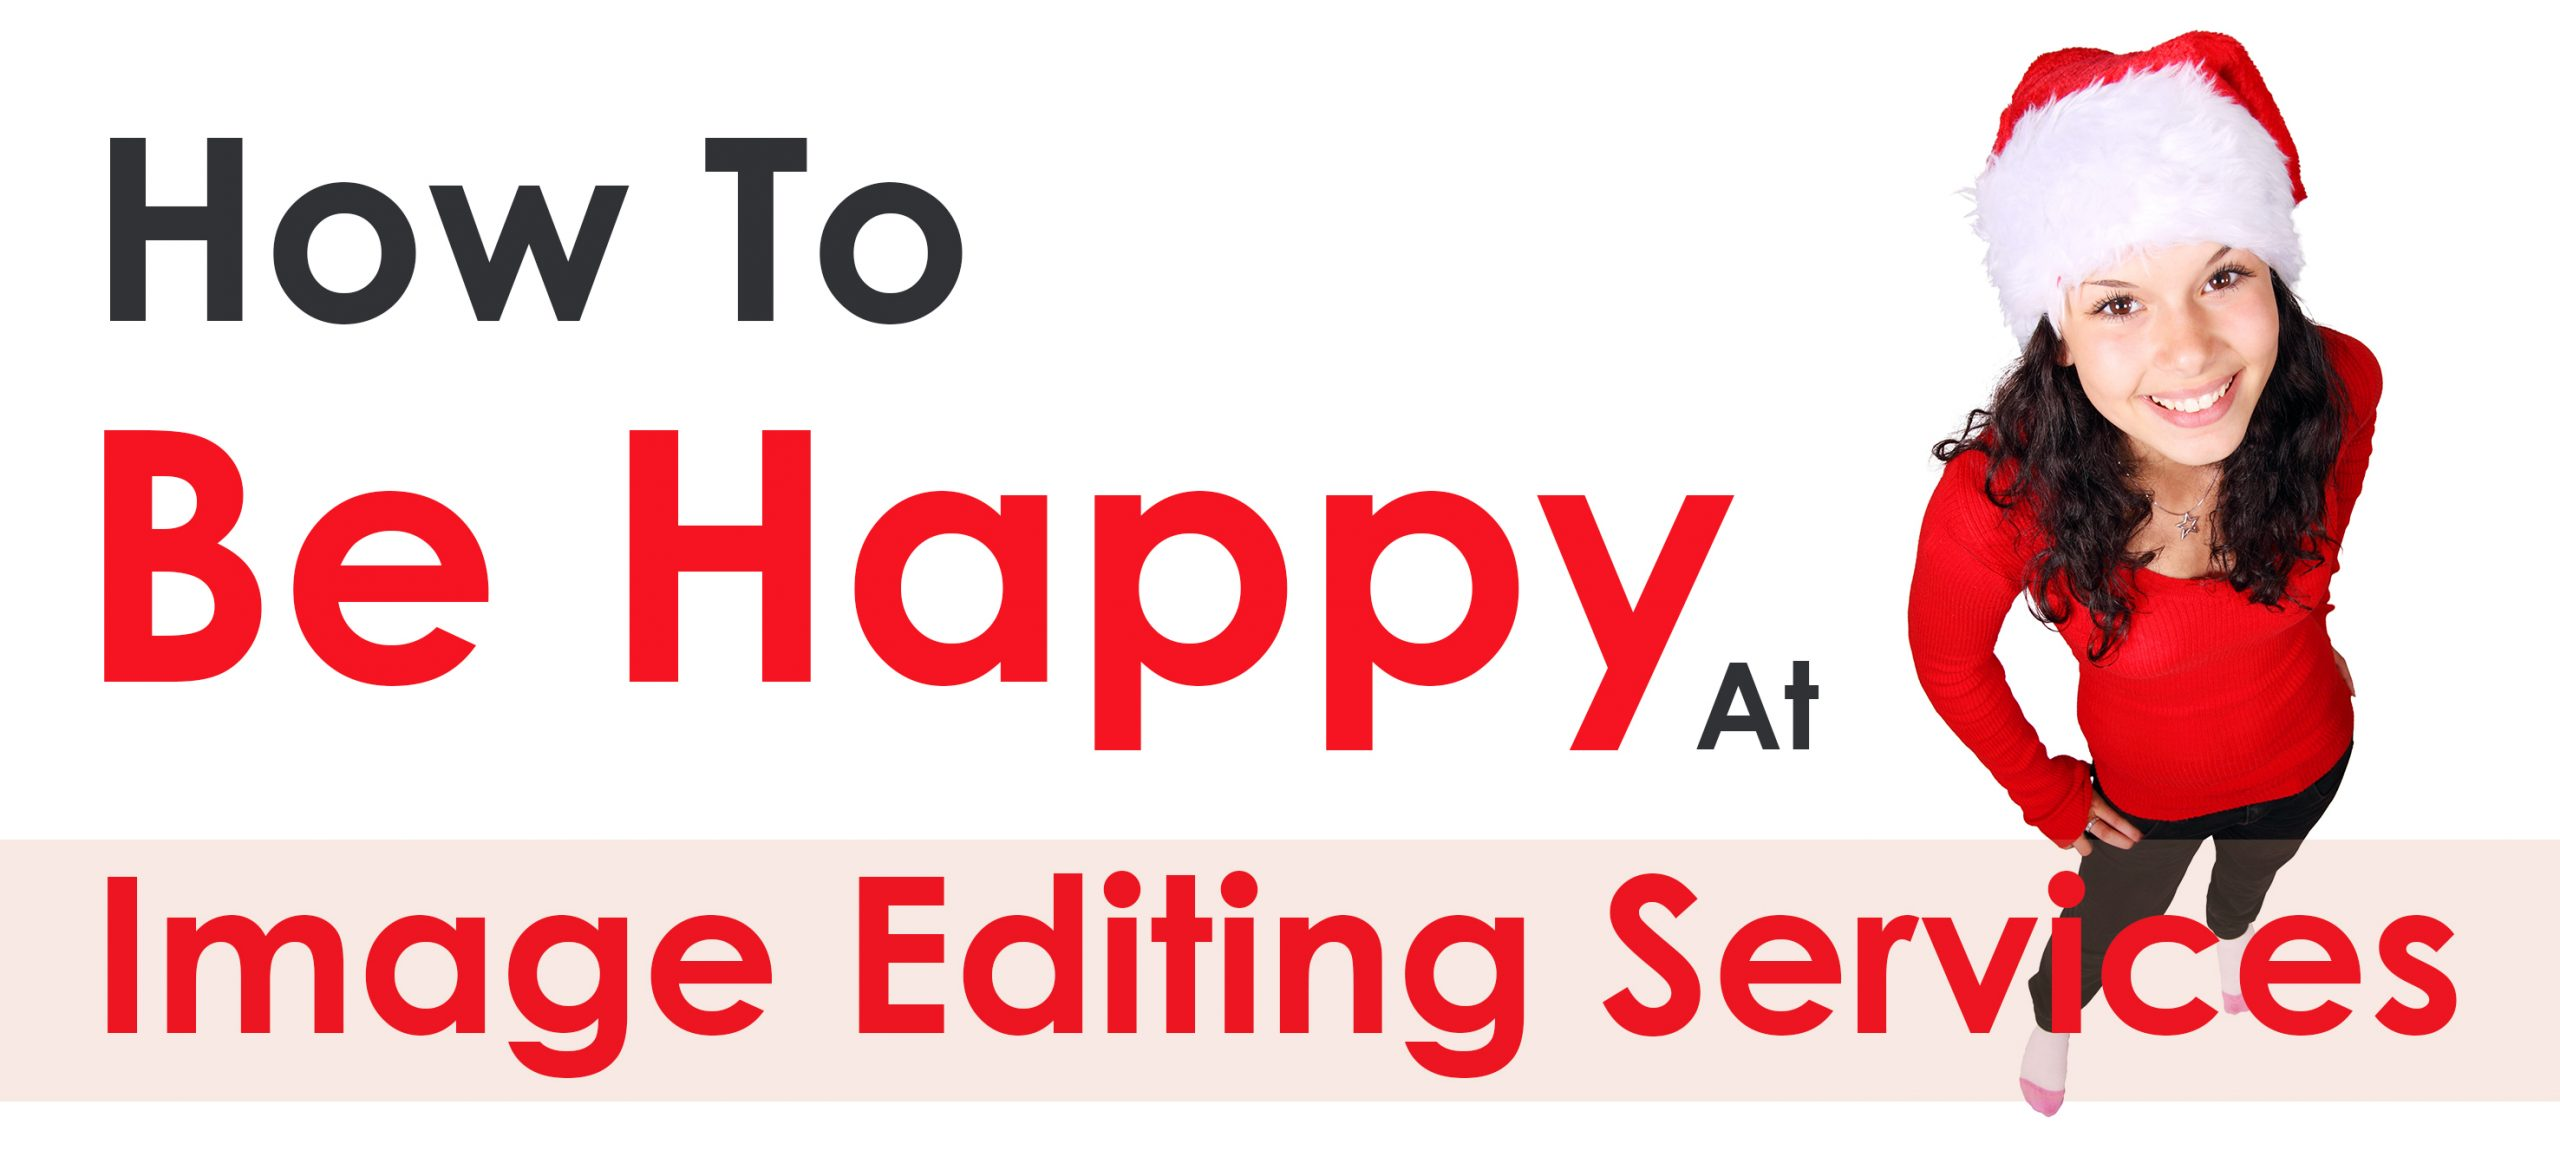 How To Be Happy At Image Editing Services